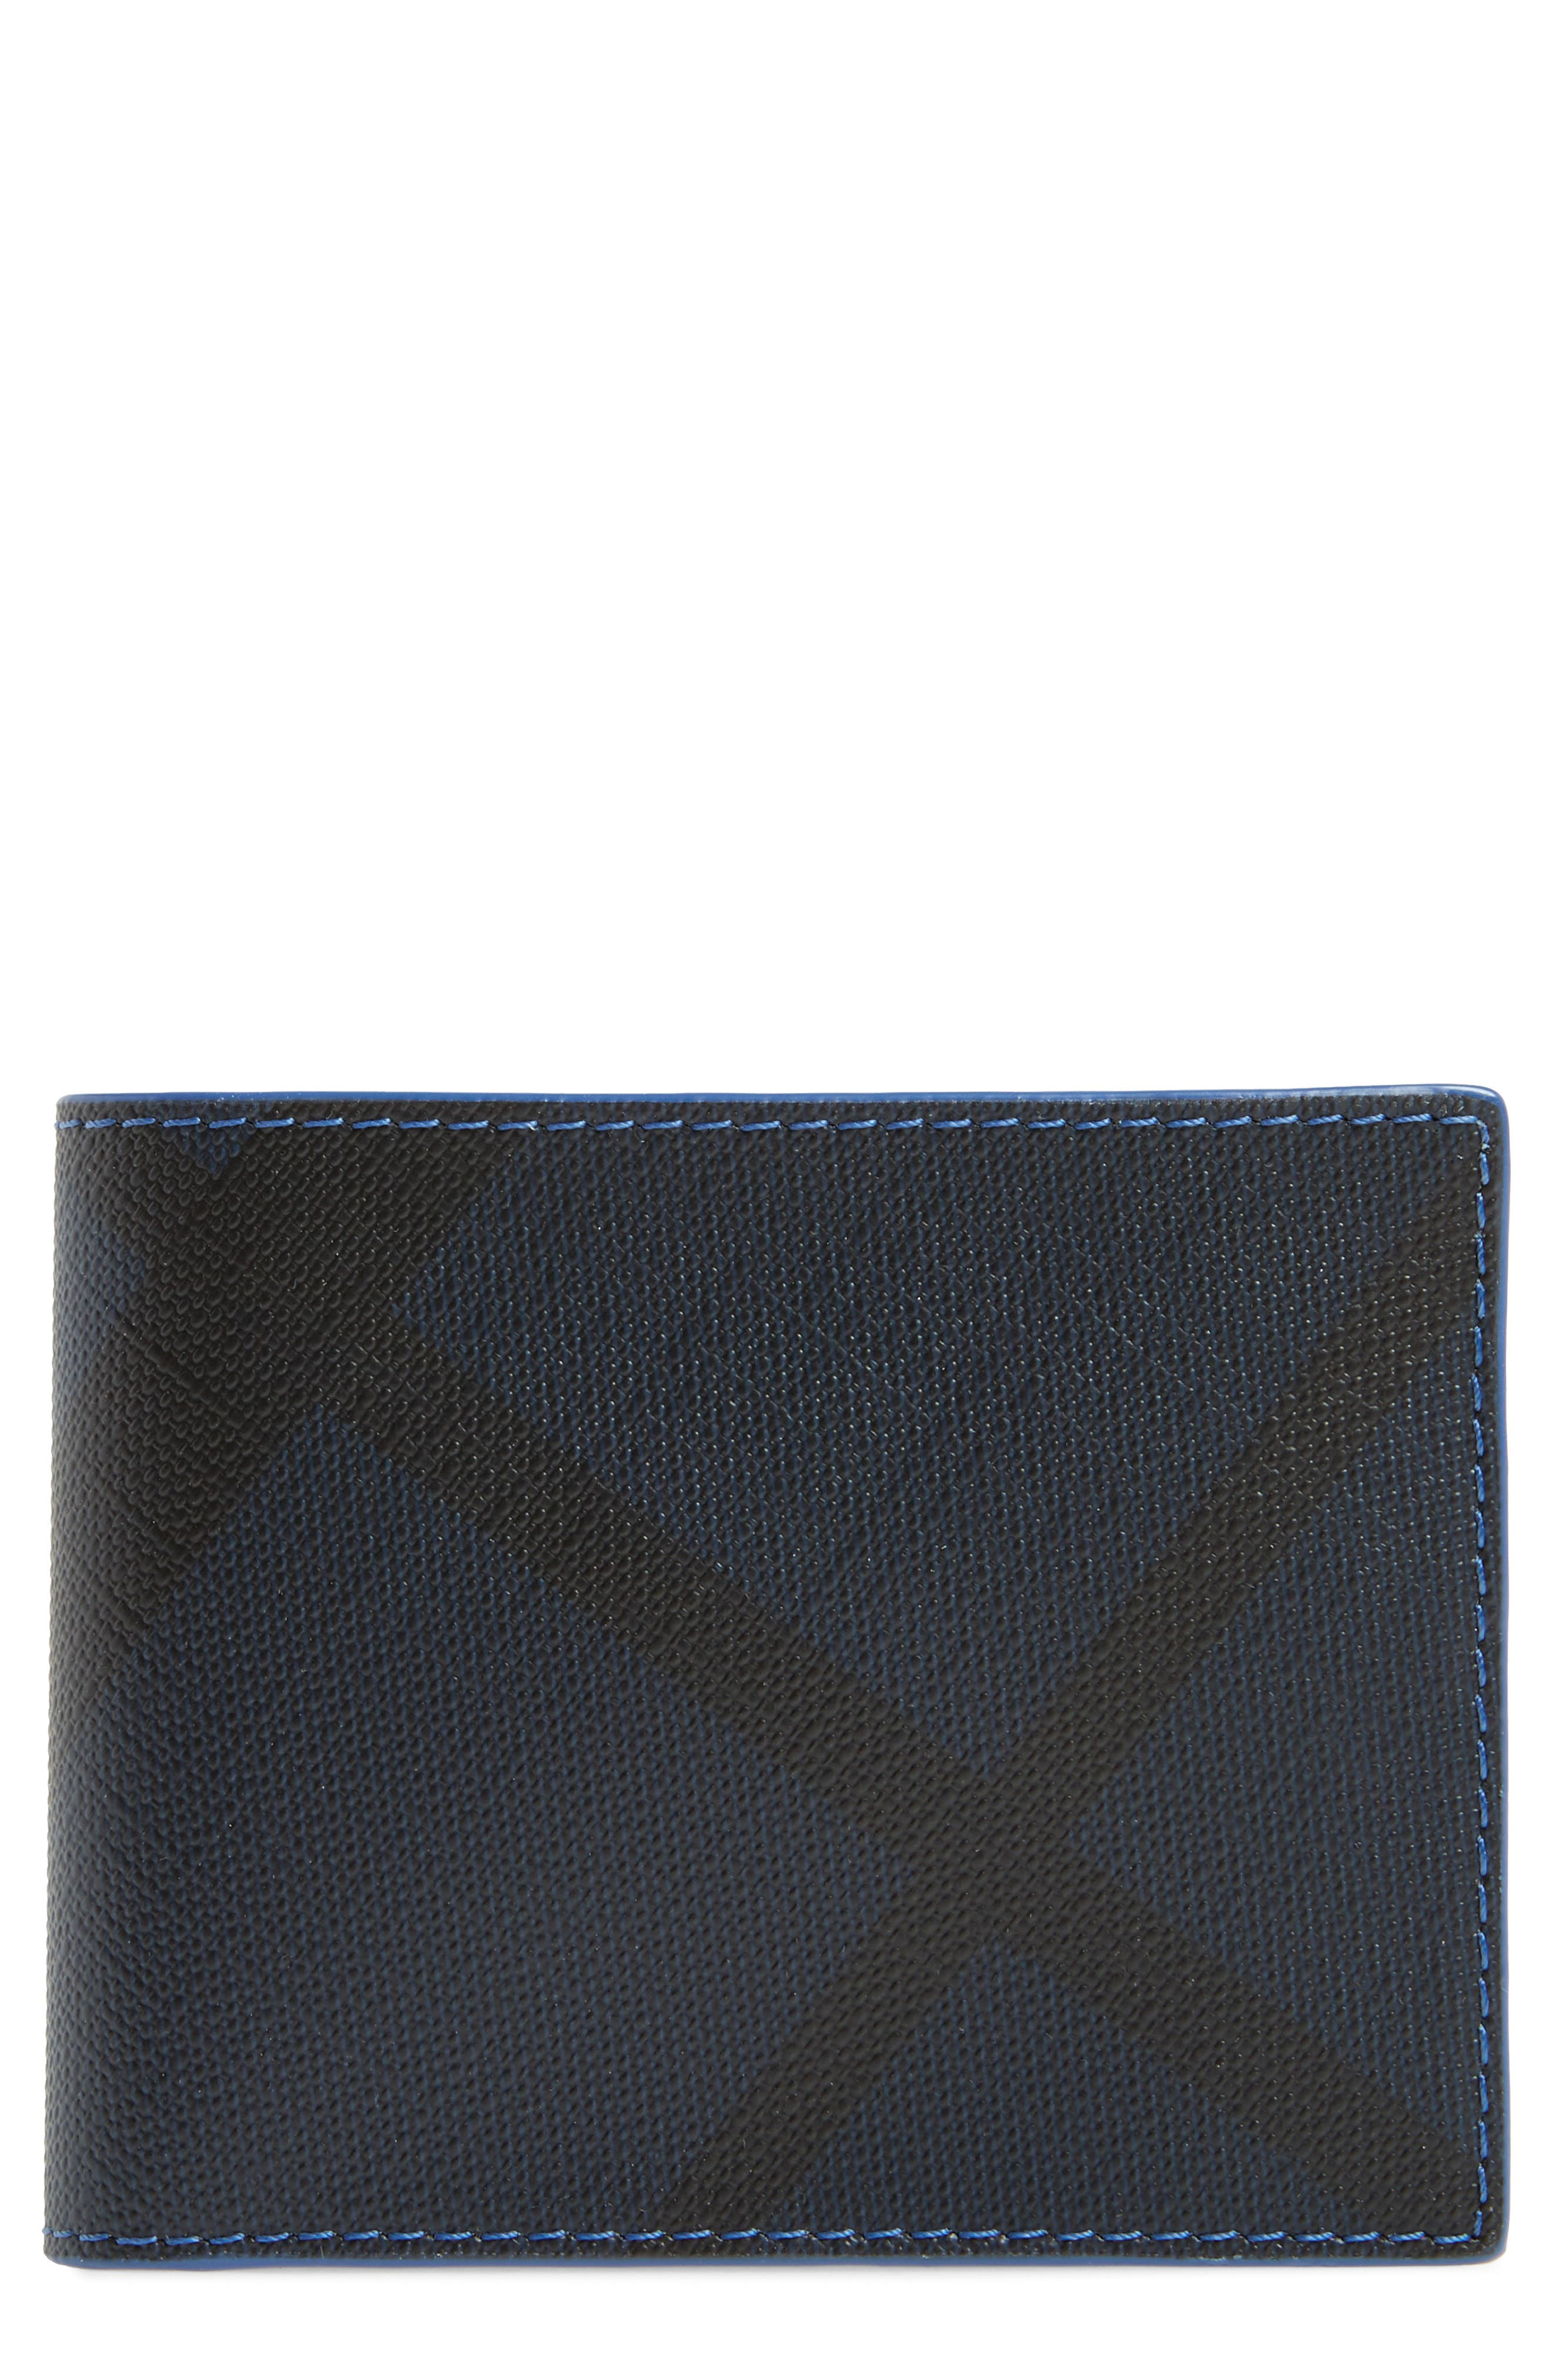 Check Faux Leather Wallet,                             Main thumbnail 1, color,                             Navy/ Blue